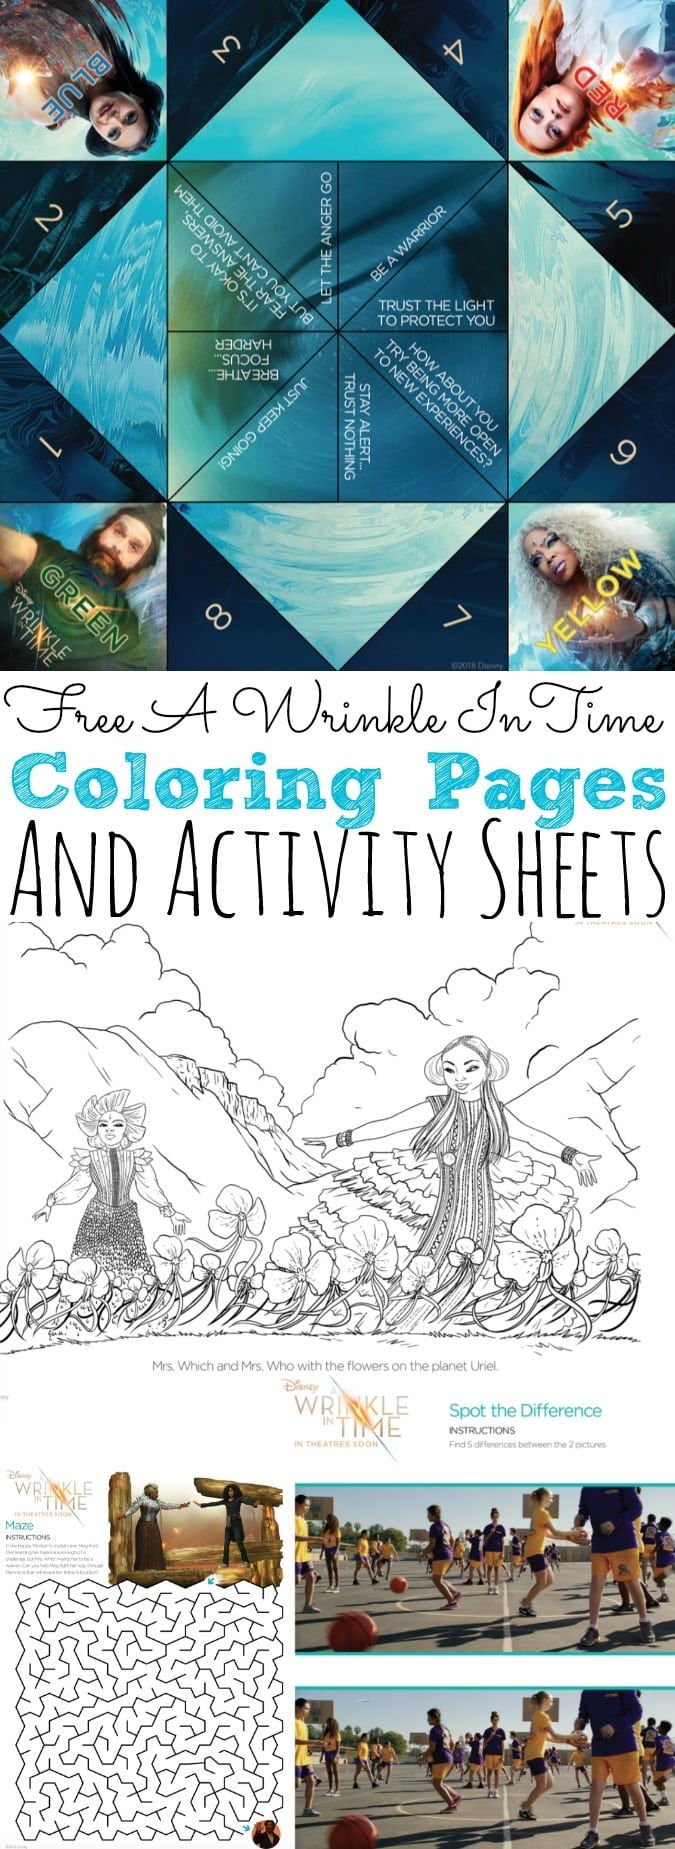 Free A Wrinkle In Time Coloring Pages and Activity Sheets ...